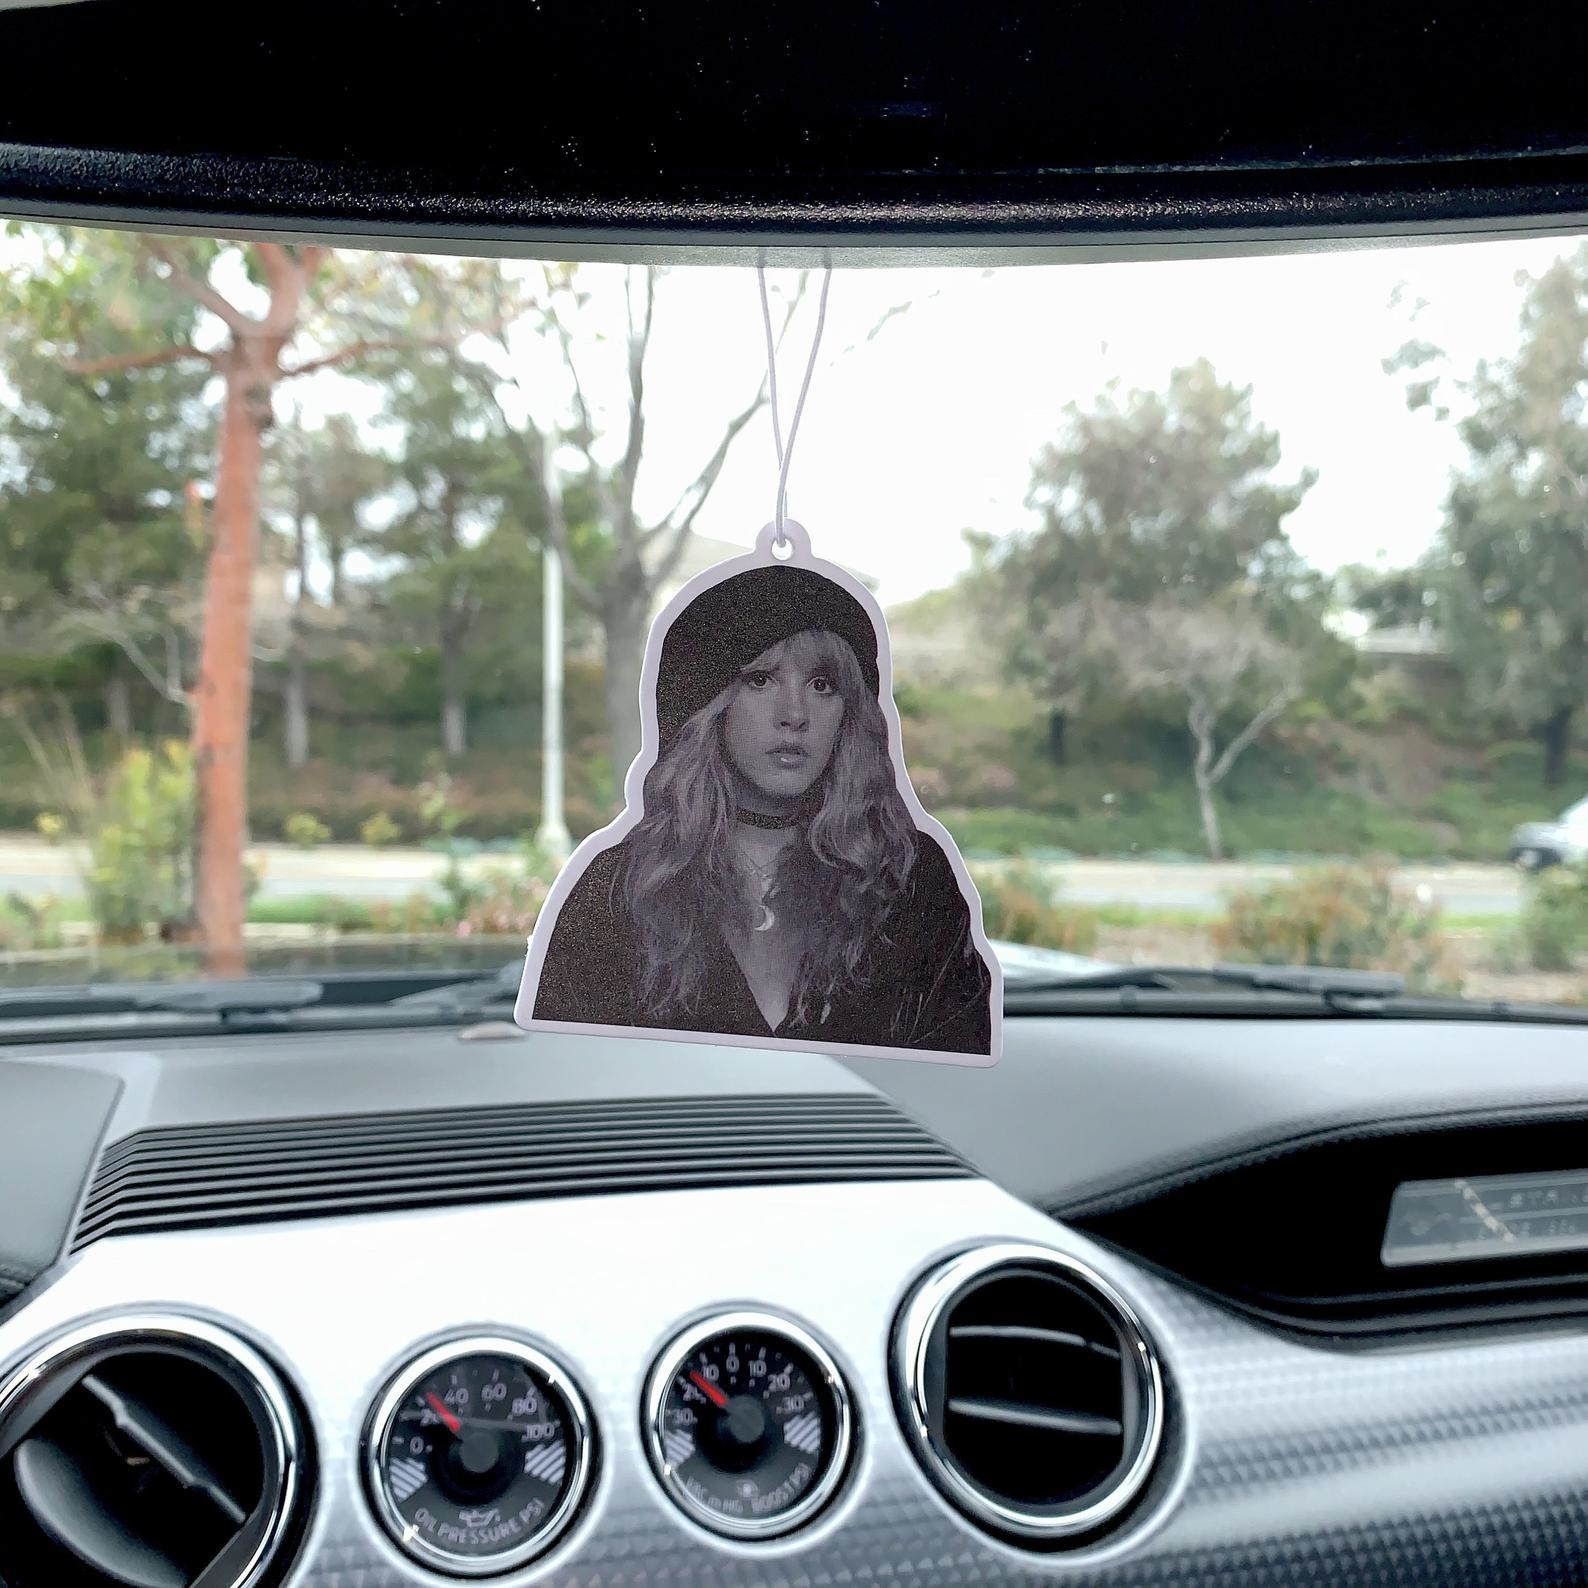 The air freshener which is a black-and-white photo of a young Stevie Nicks